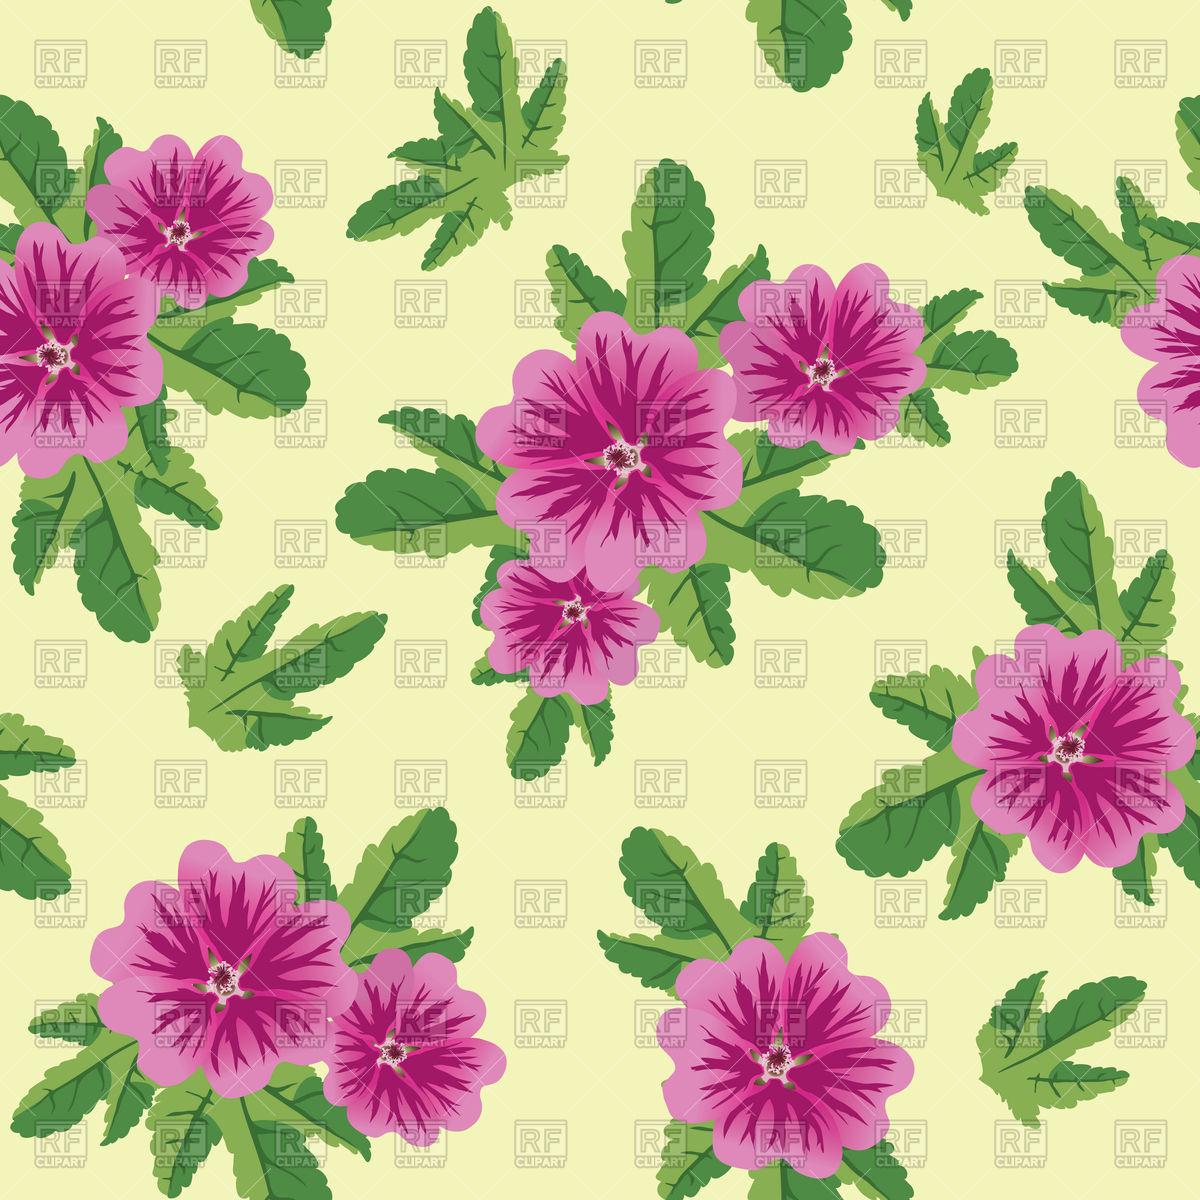 Seamless pattern with malva flowers Vector Image #75923.